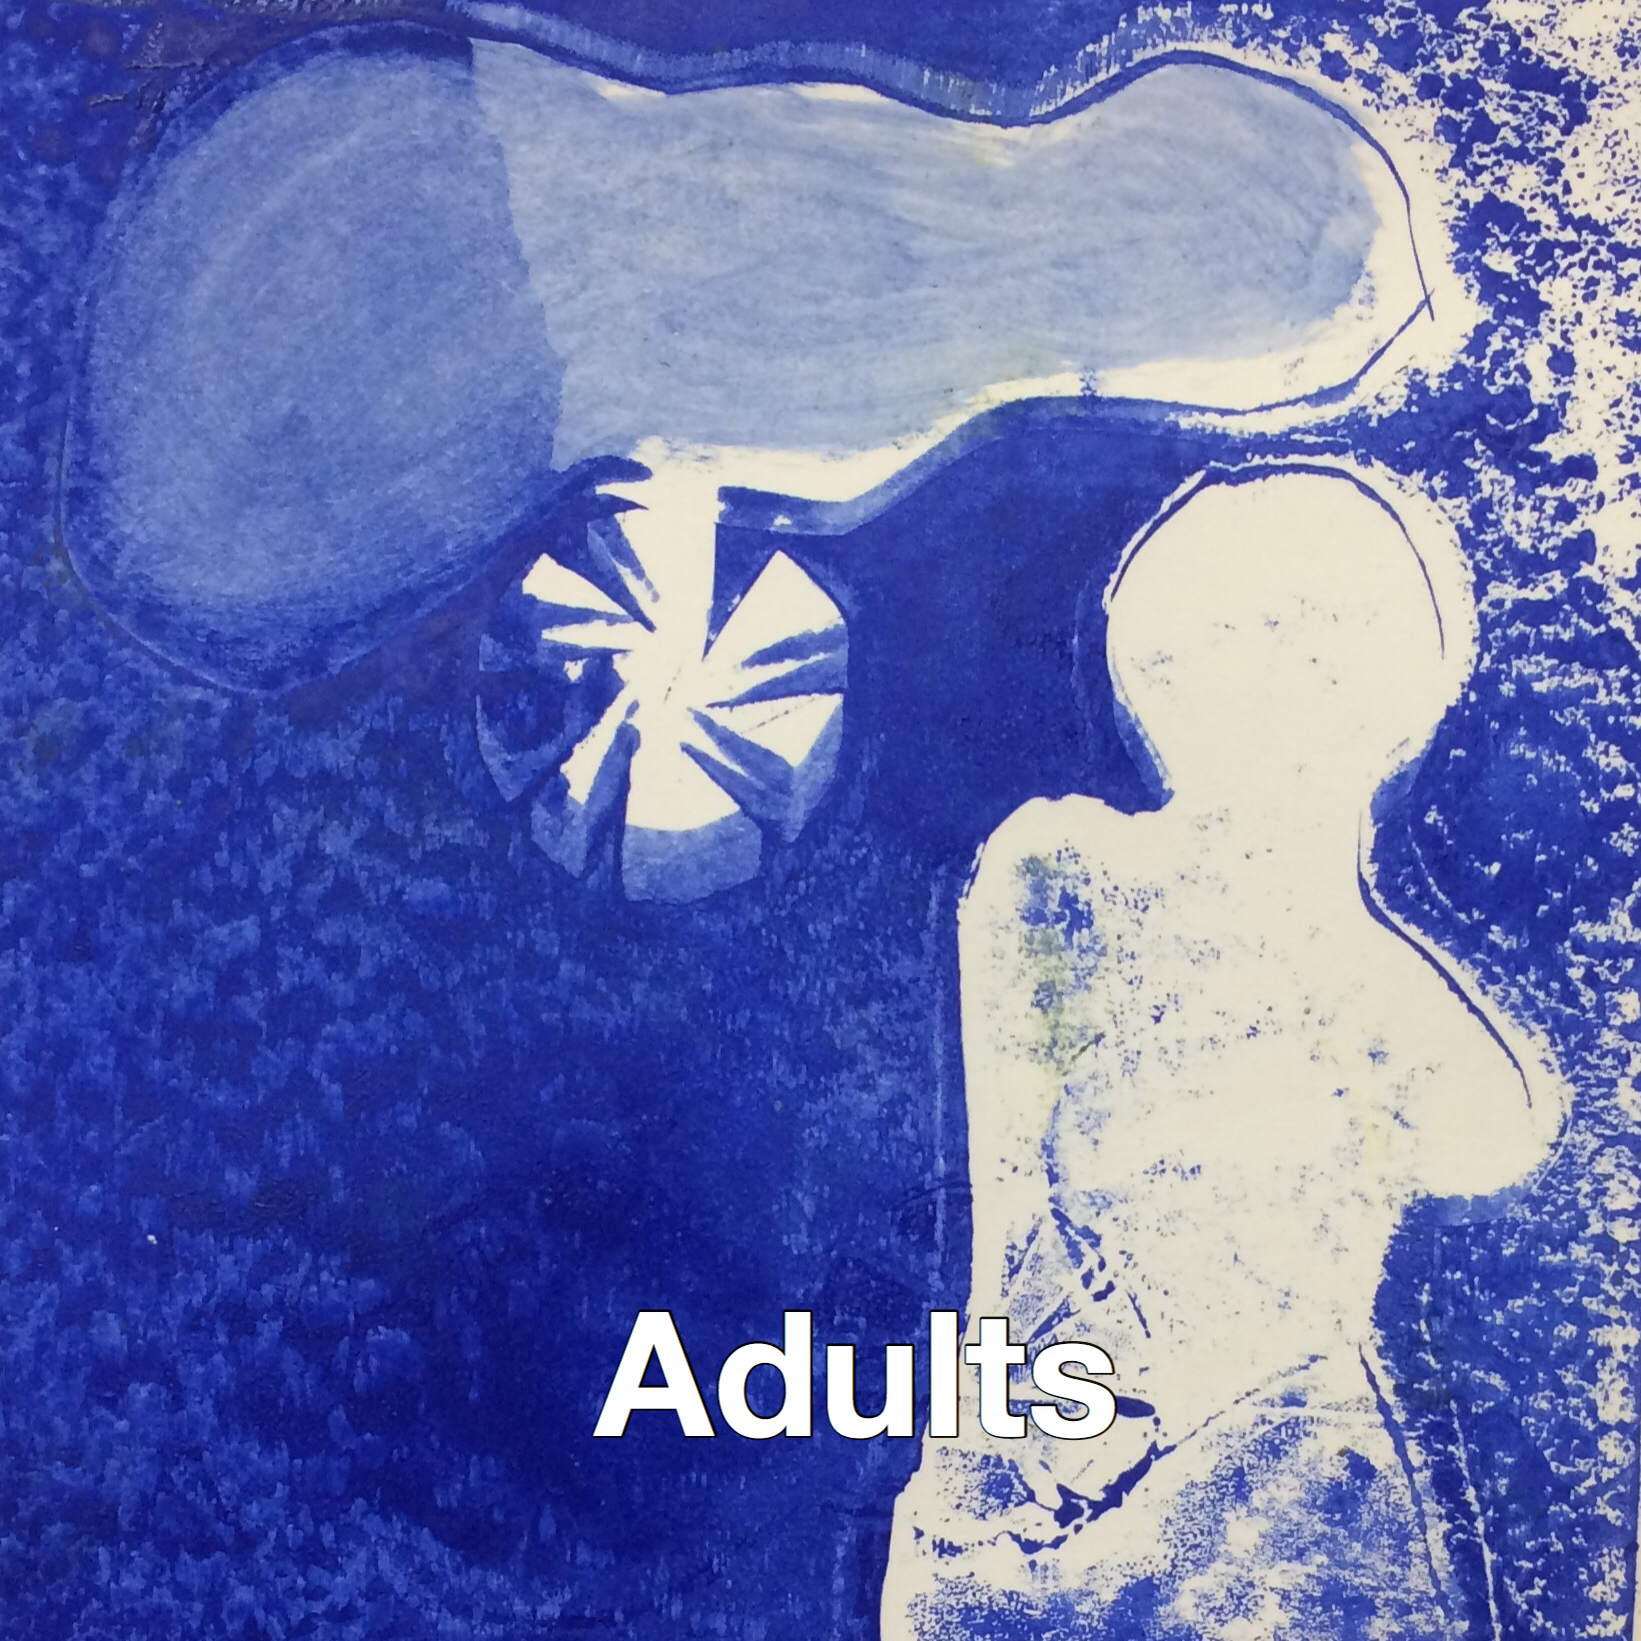 Adults-web